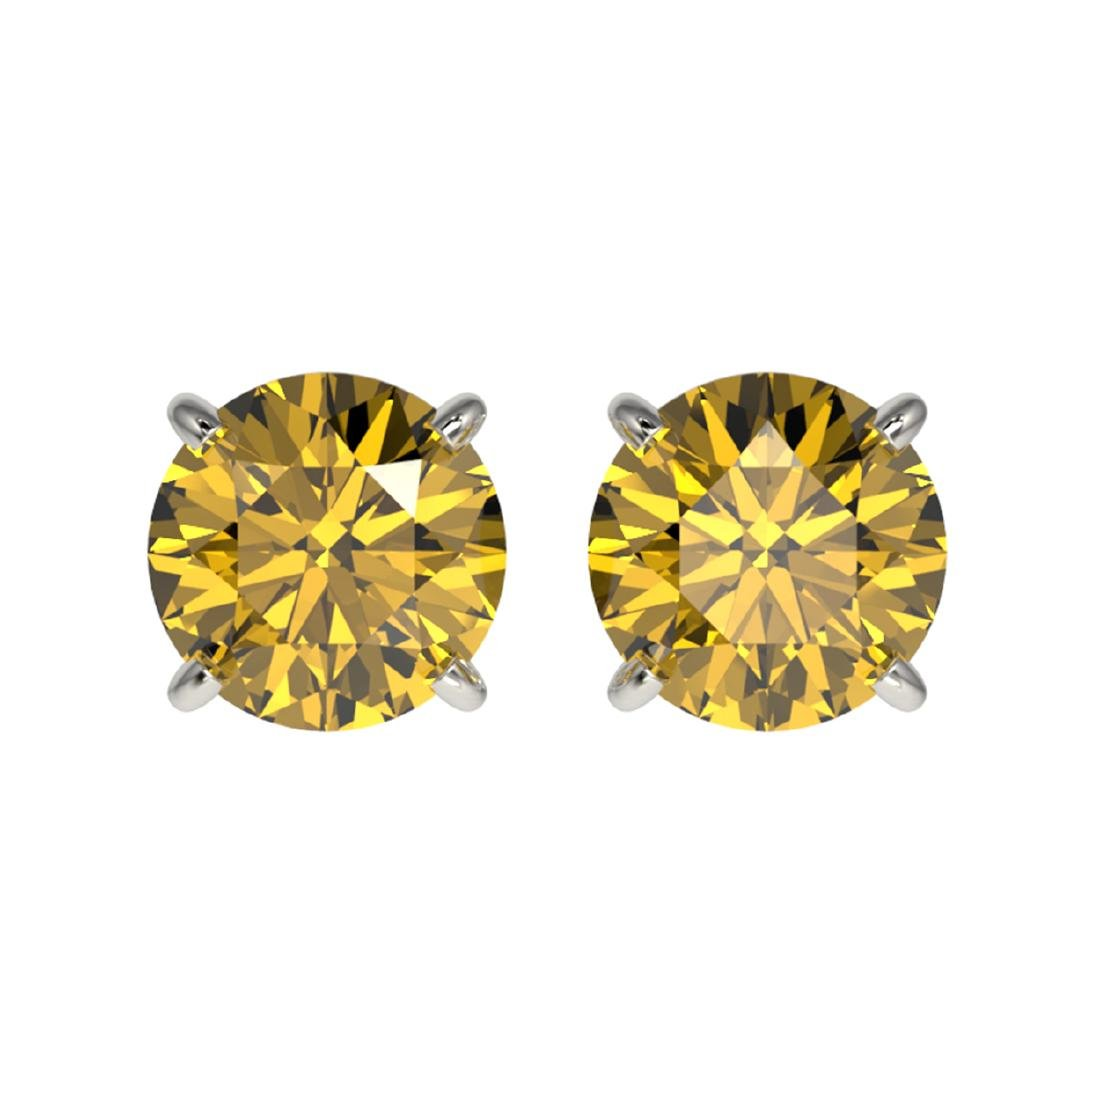 1.54 ctw Intense Yellow Diamond Stud Earrings 10K White